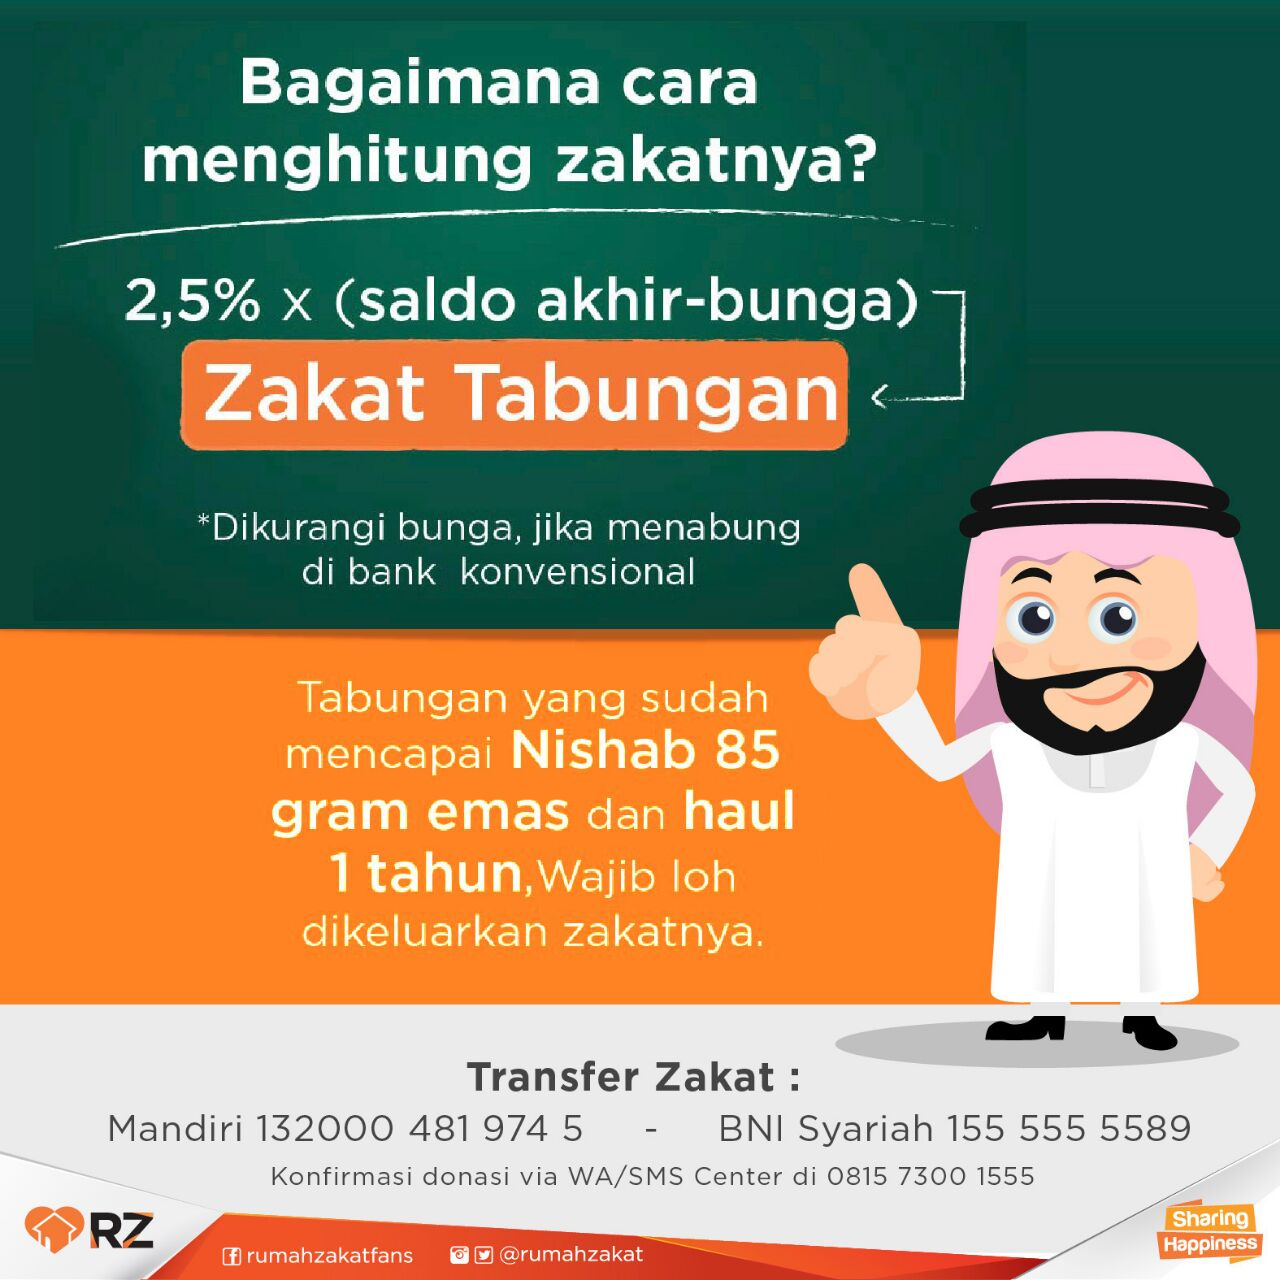 influence of zakat infak and sadaqah Professionalism to the acquisition of zakat, 2) effect of accountability,  of  governance and distribution of zakat in zakat institution, infaq and sadaqah ( lagzis.